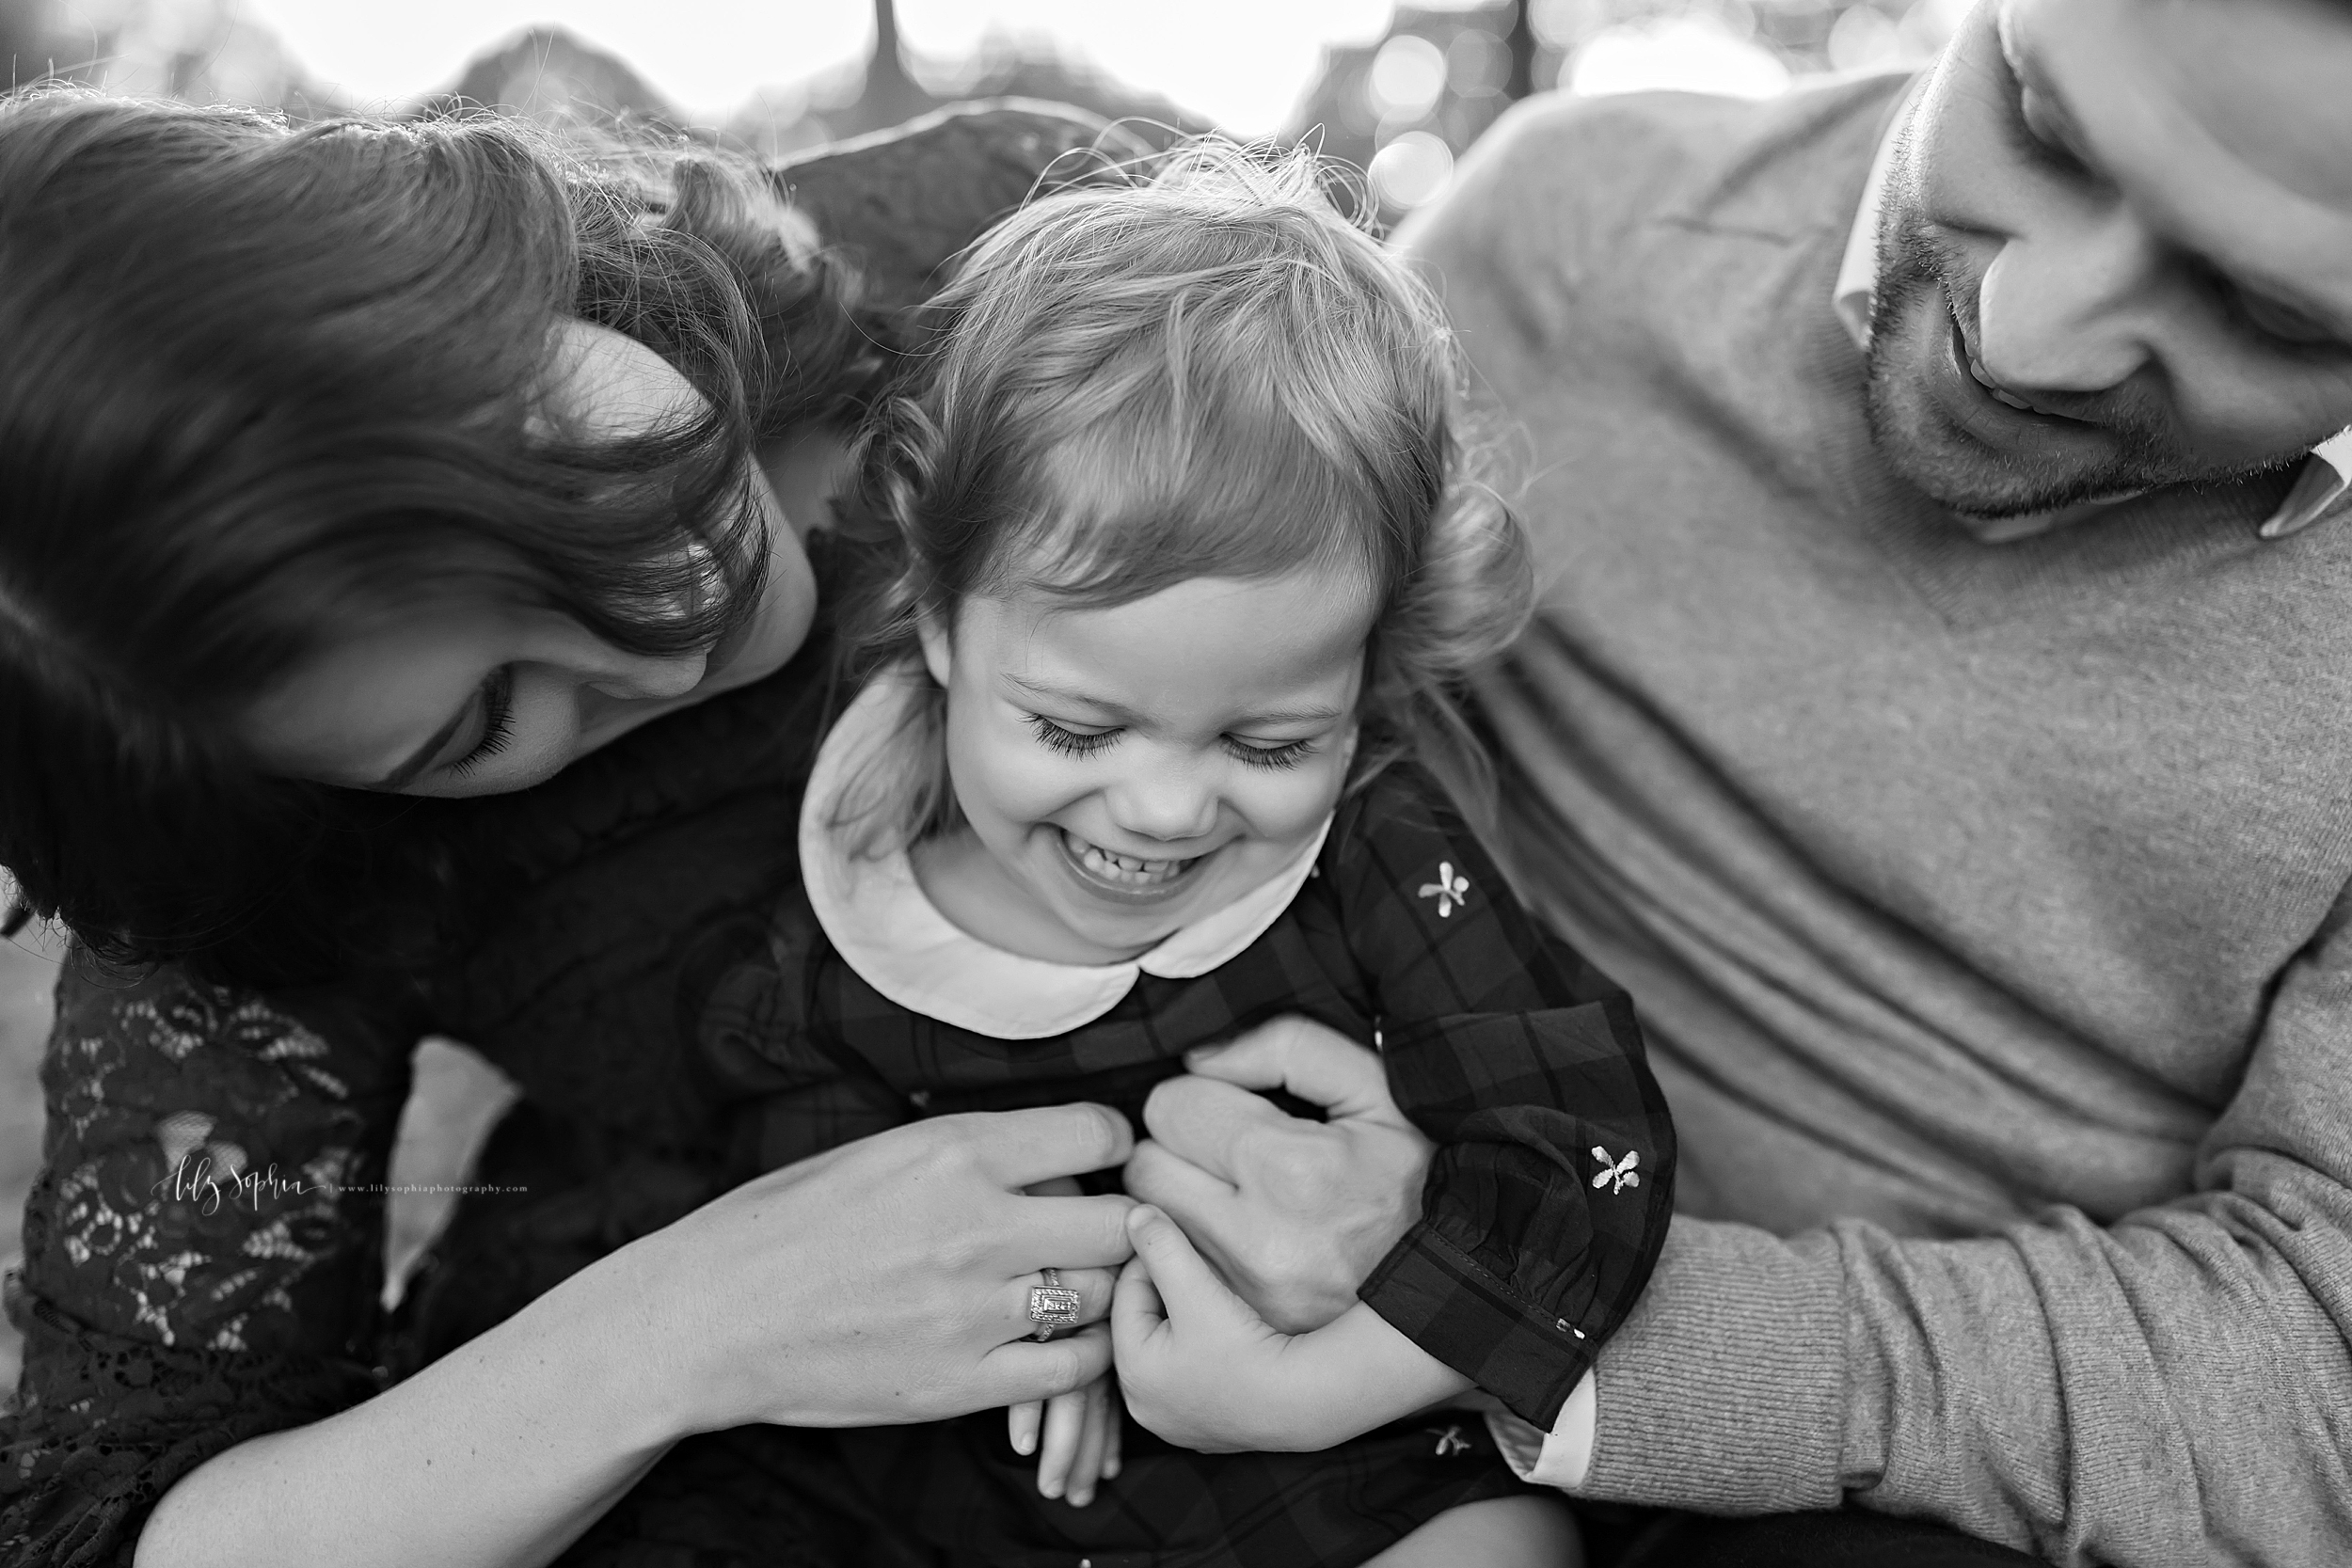 atlanta-buckhead-brookhaven-decatur-lily-sophia-photography-photographer-portraits-grant-park-intown-outdoor-family-sunset-session-toddler-baby-girl_0001.jpg